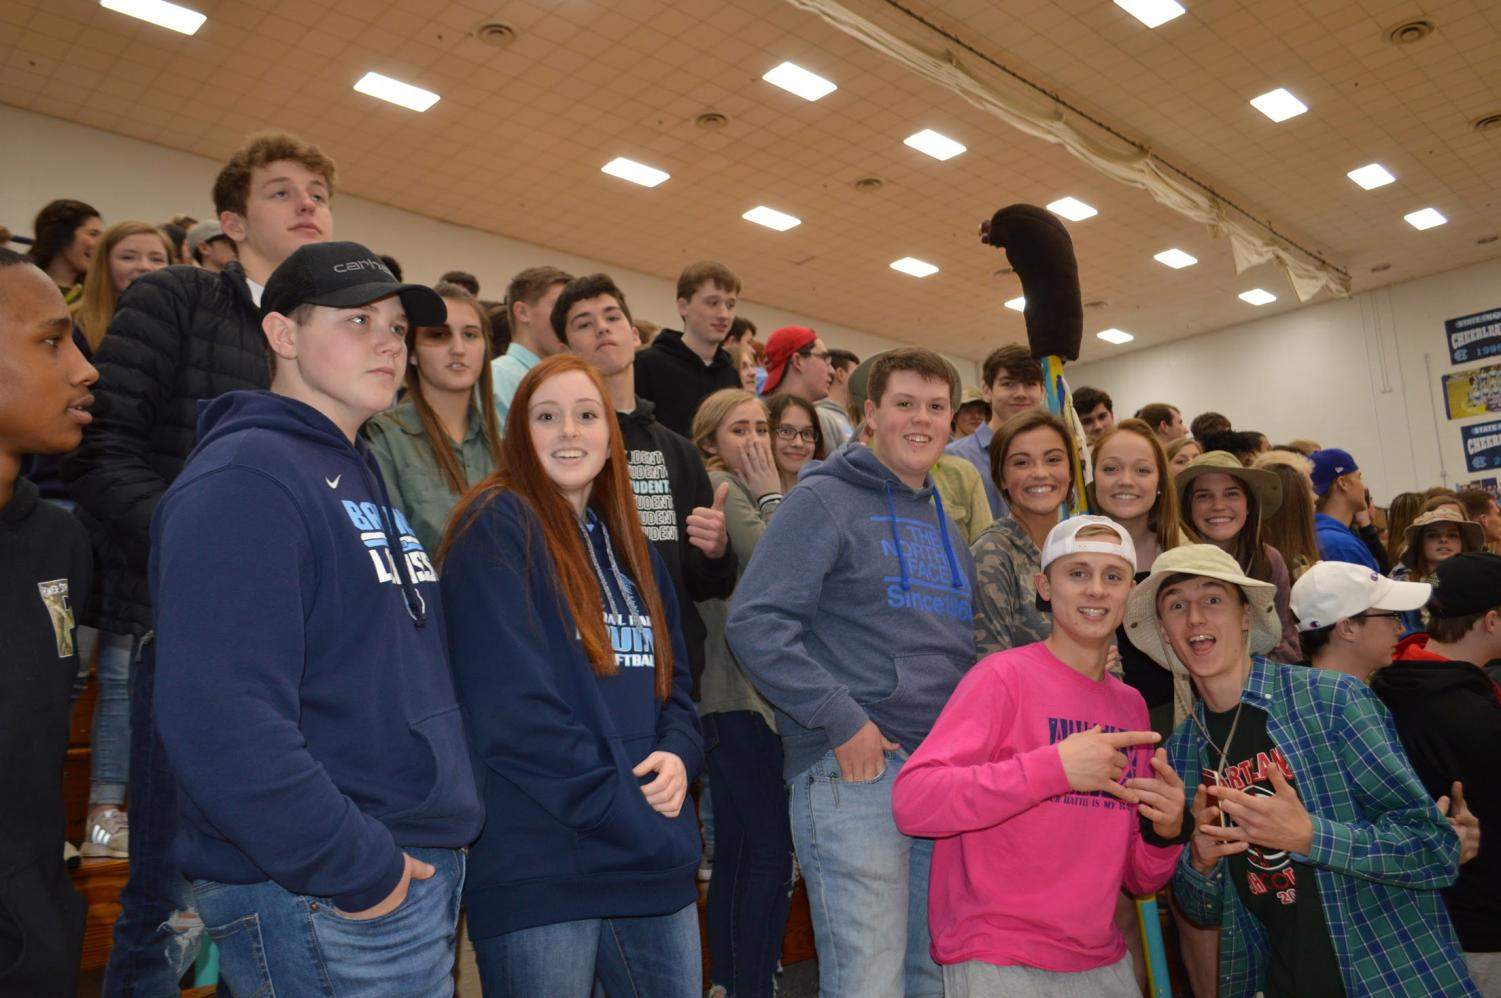 Despite three consecutive snow days, the crowd showed up for Homecoming at the girls' game against John Hardin on Feb. 1.